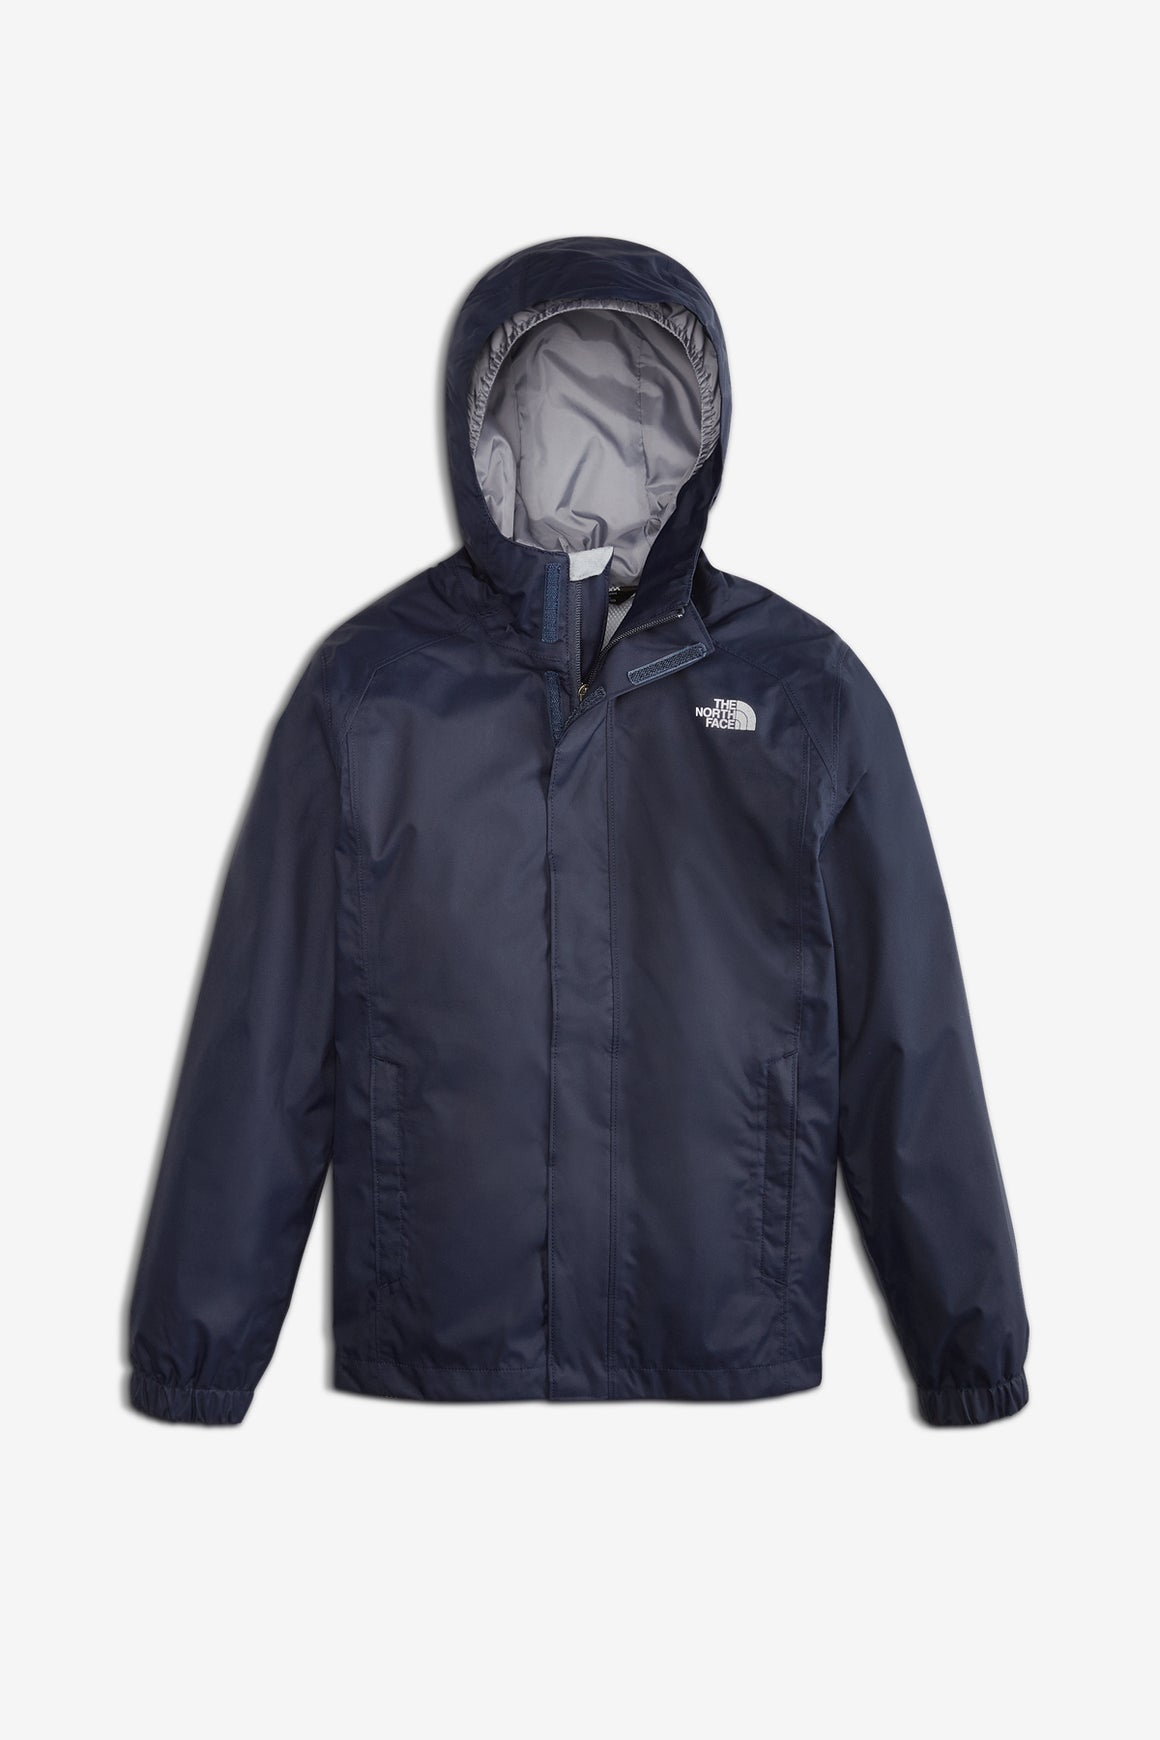 The North Face Boys' Resolve Reflective Rain Jacket - Cosmic Blue